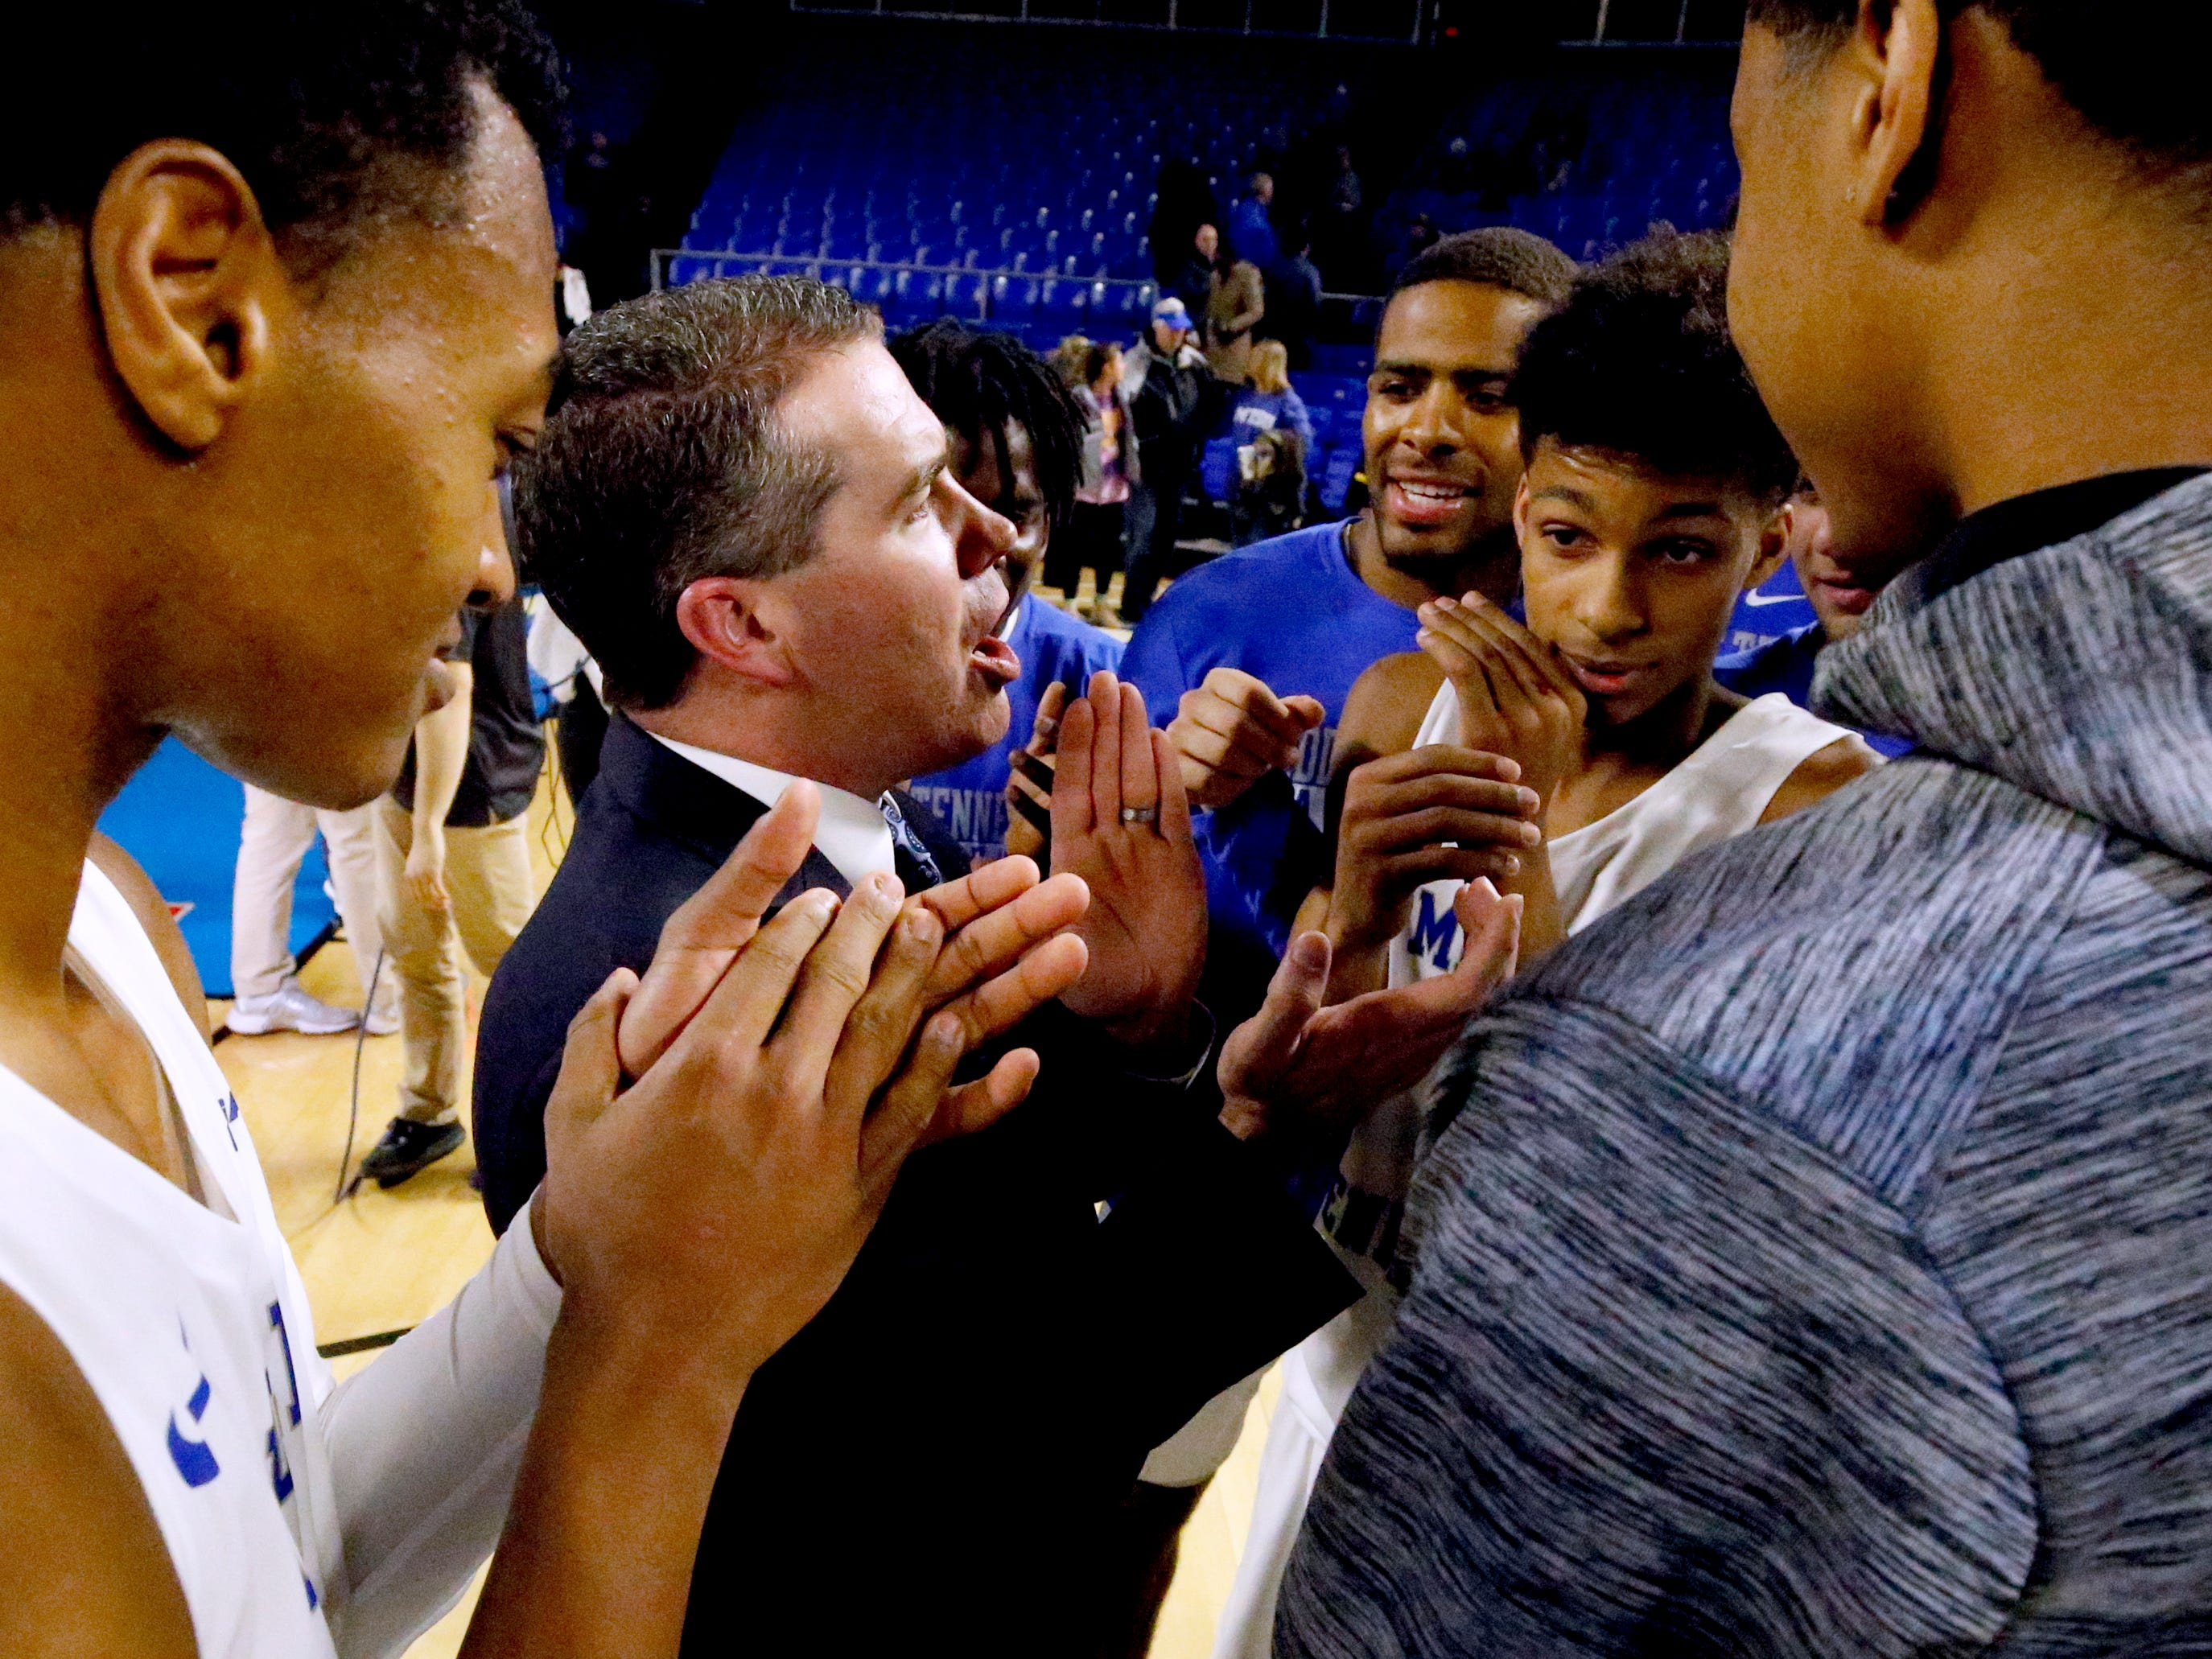 MTSU head coach Nick McDevitt celebrates with his team after they beat UAB 71-65 on Wednesday, Jan. 30, 2019.